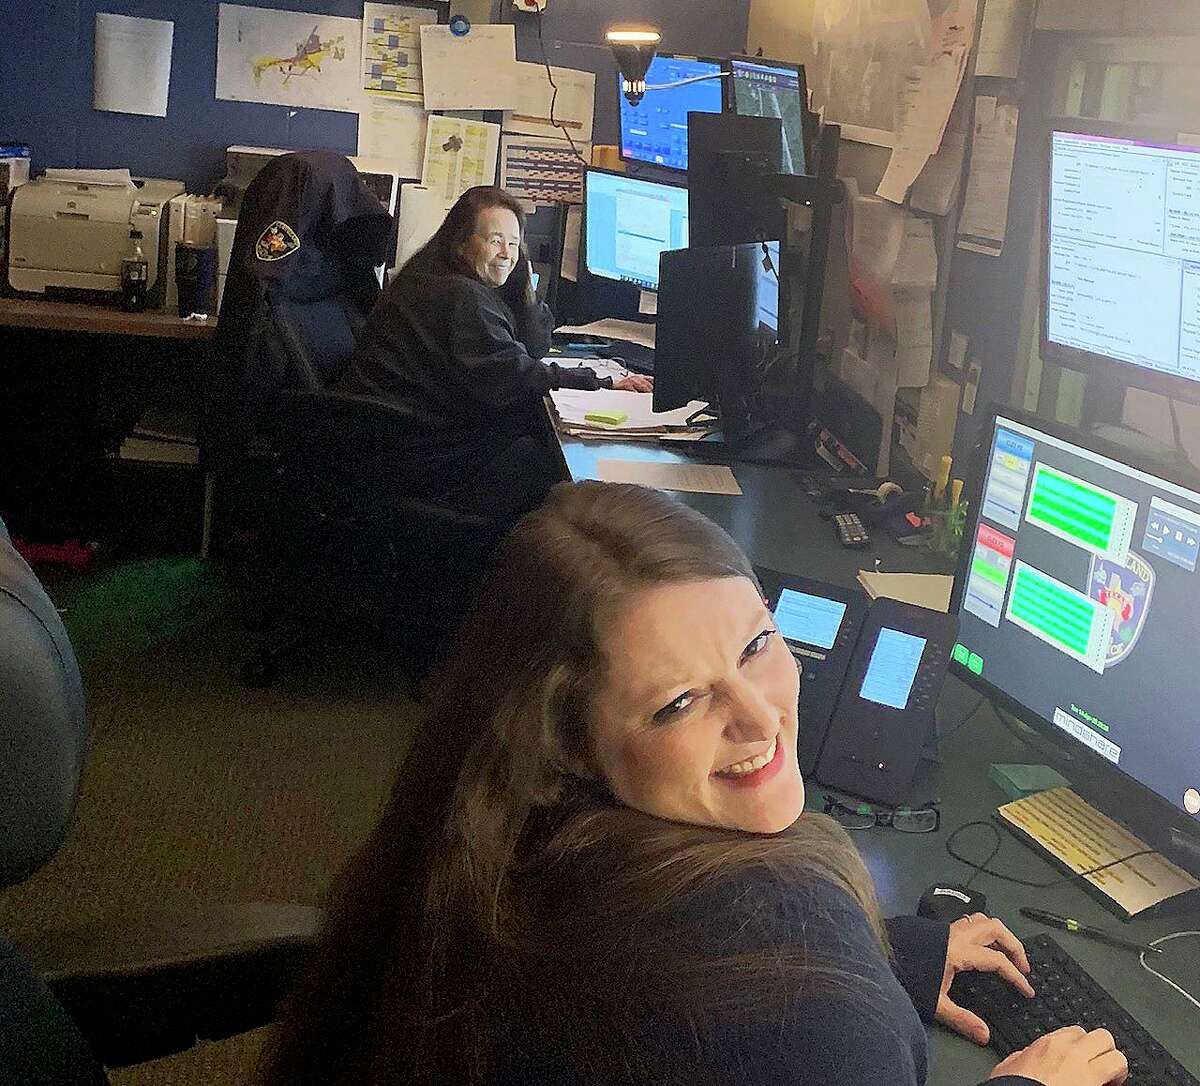 Inside the dispatch center, employees try to keep it light in order to handle the stress of the crisis situations they have to solve every day on duty. Cleveland celebrated their telecommunicators for their hard work this week.